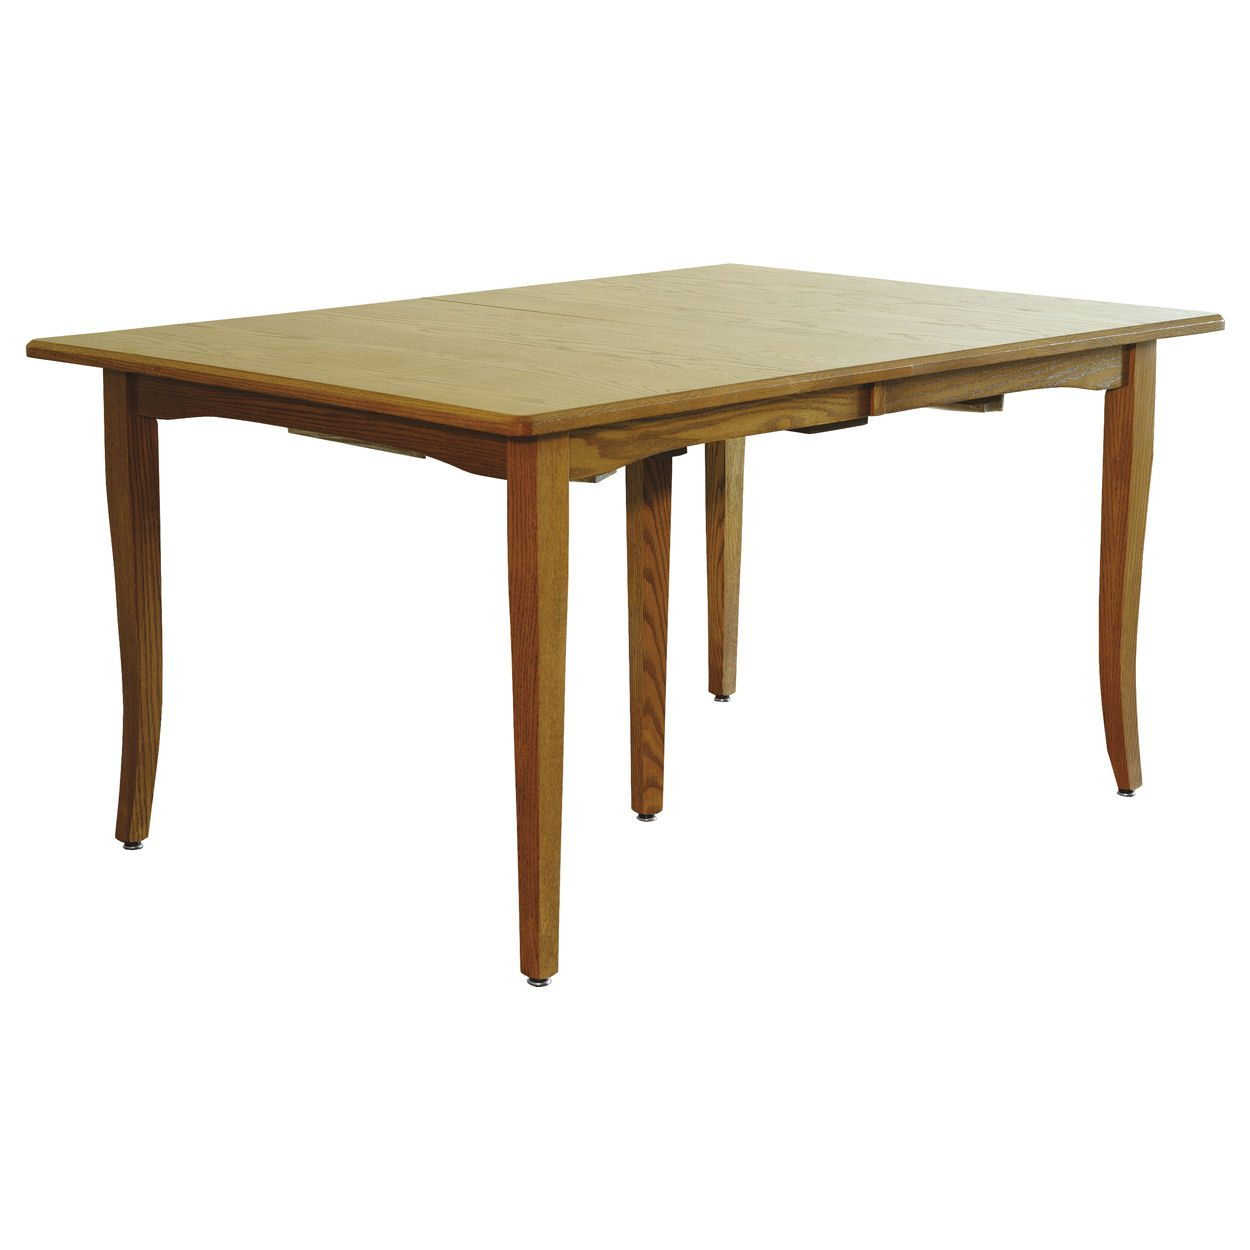 Old South Country Dining Collection G02-20 Table with Leaves